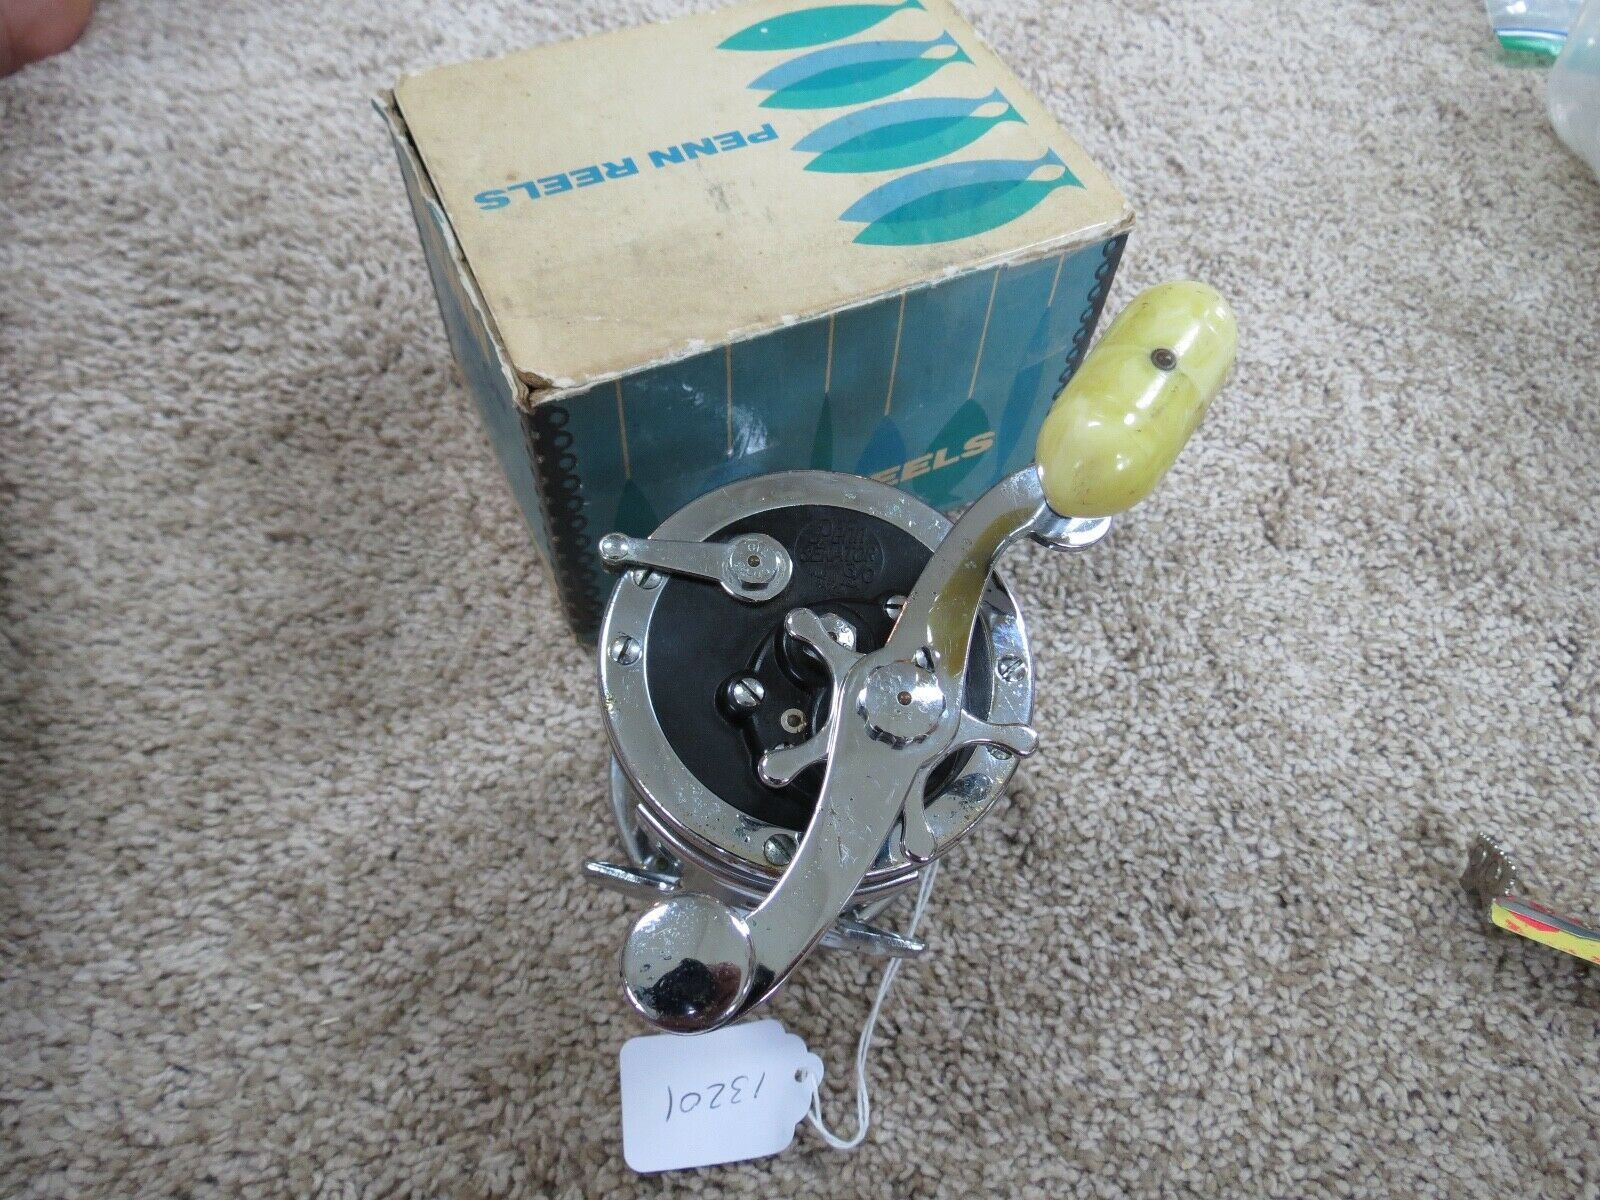 Penn 3 0 Senator fishing reel and box Gelb handle (lot 13201)